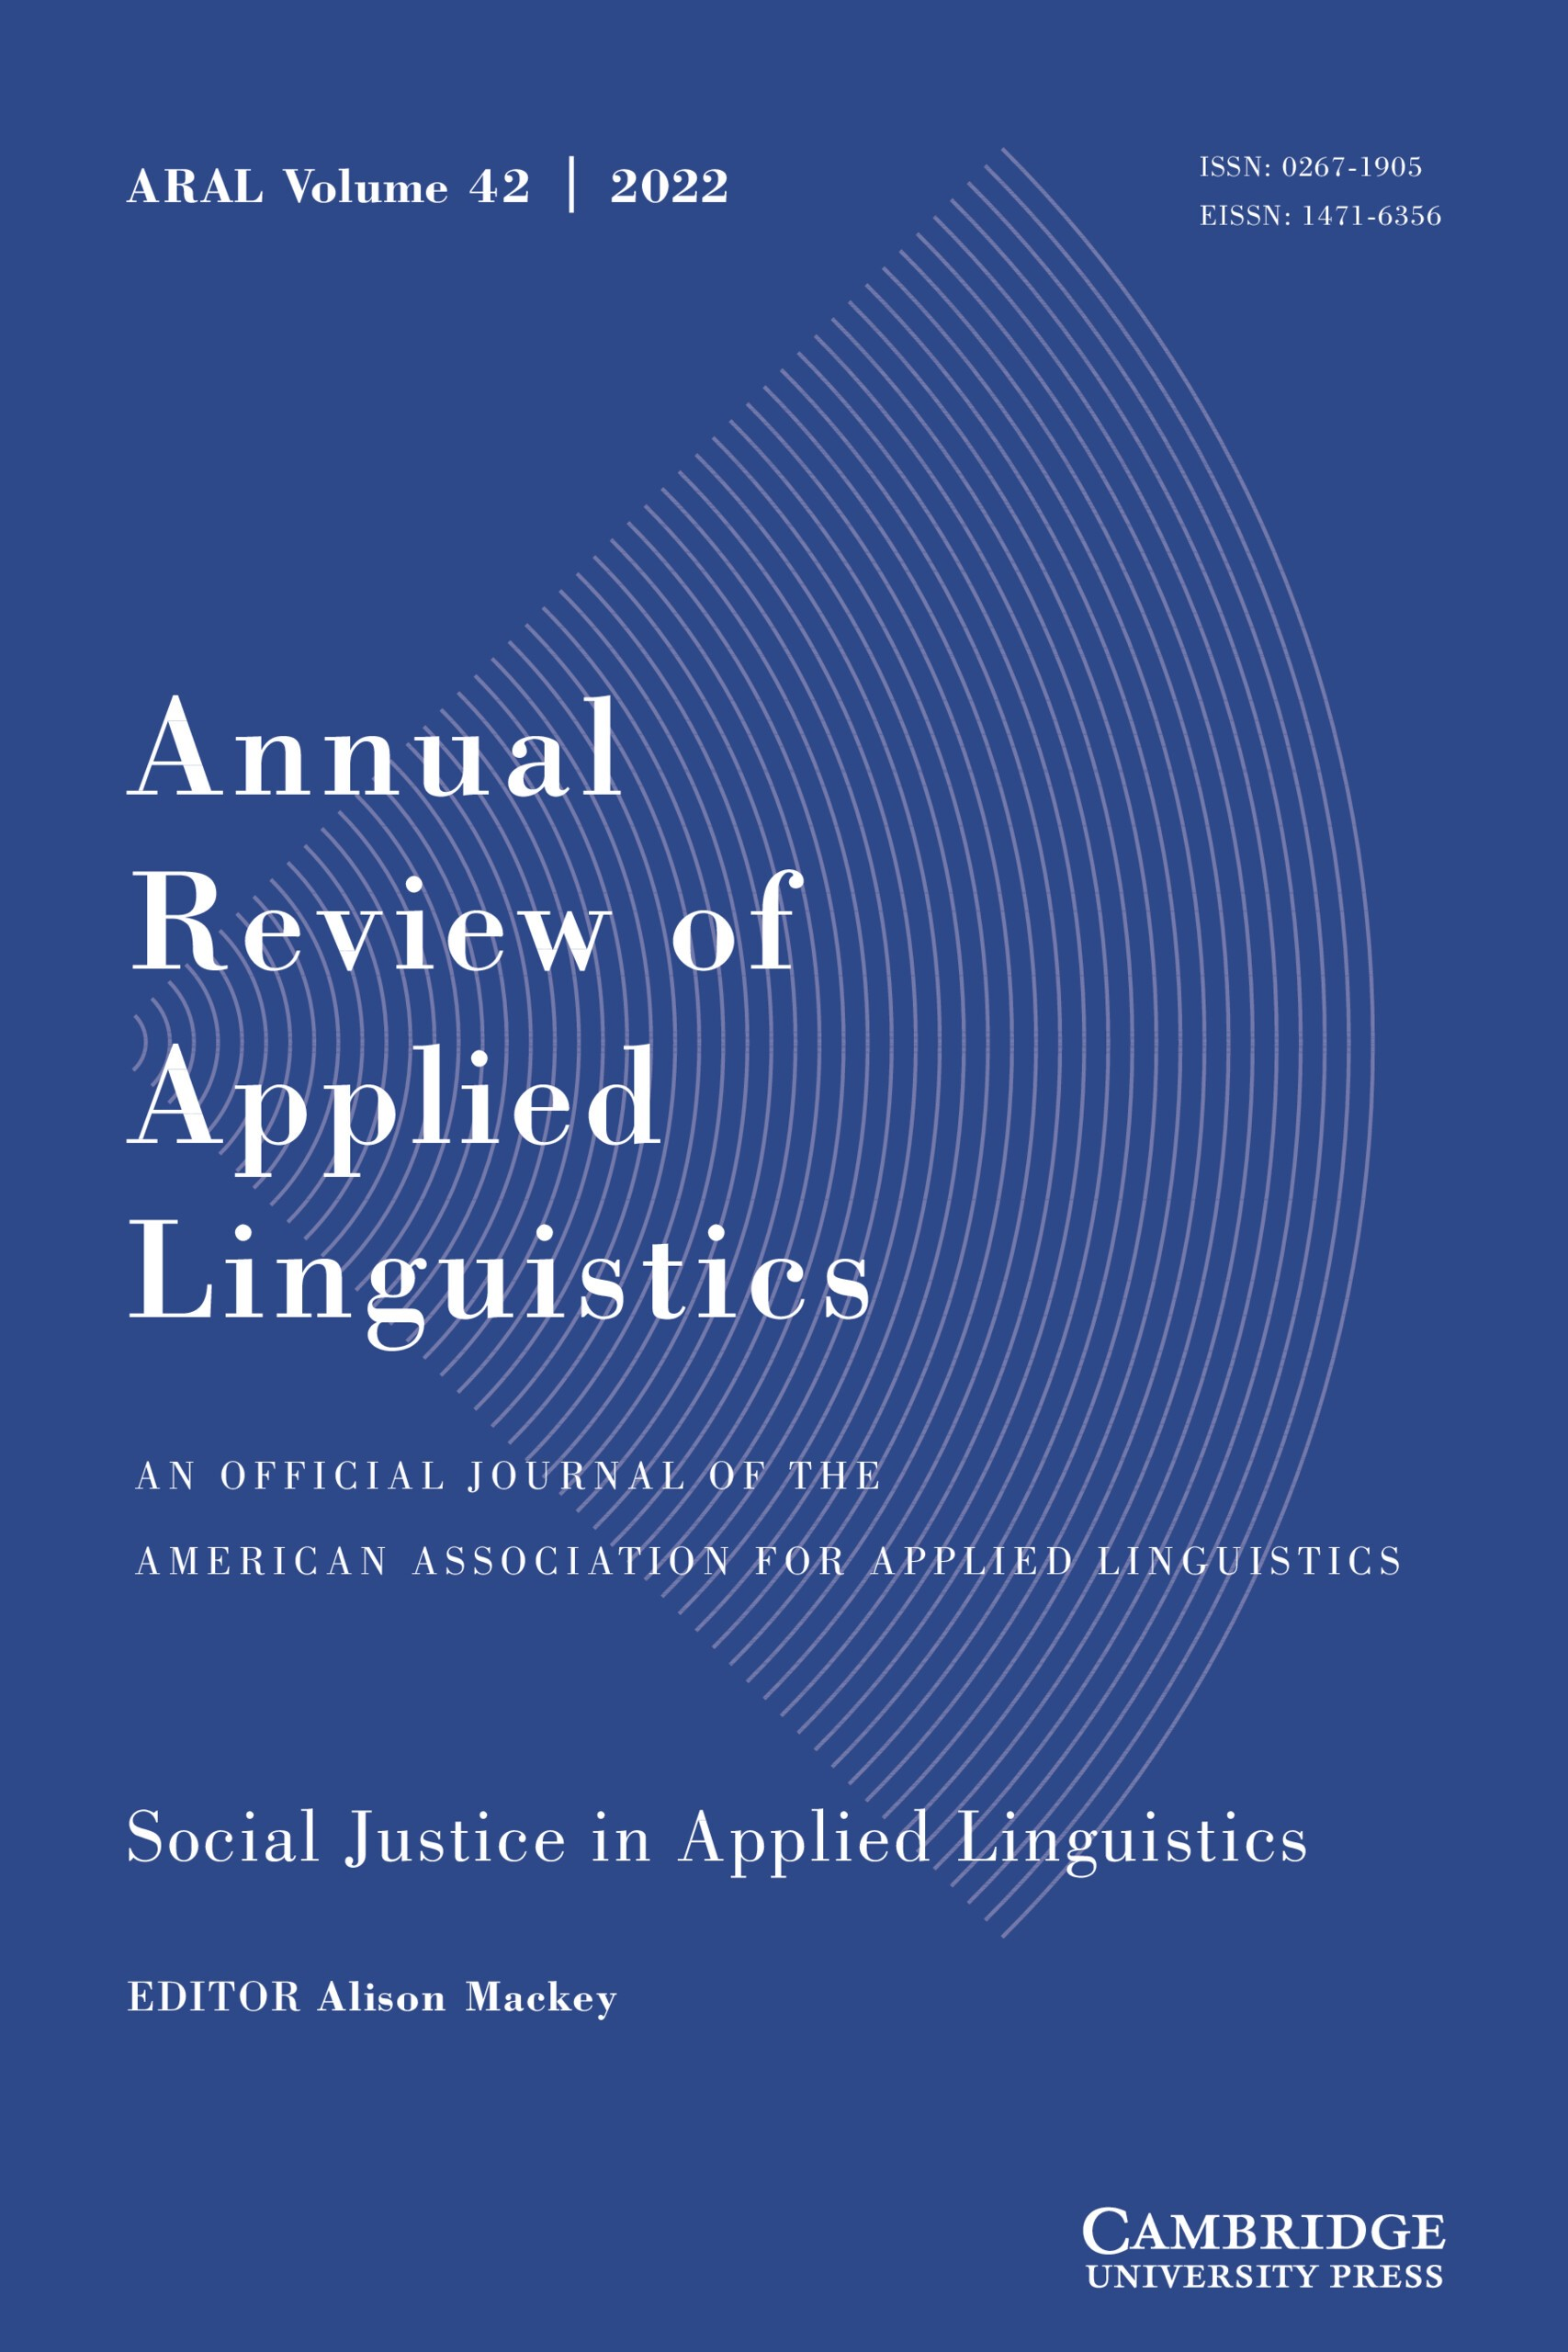 Cover of the Annual Review of Applied Linguistics